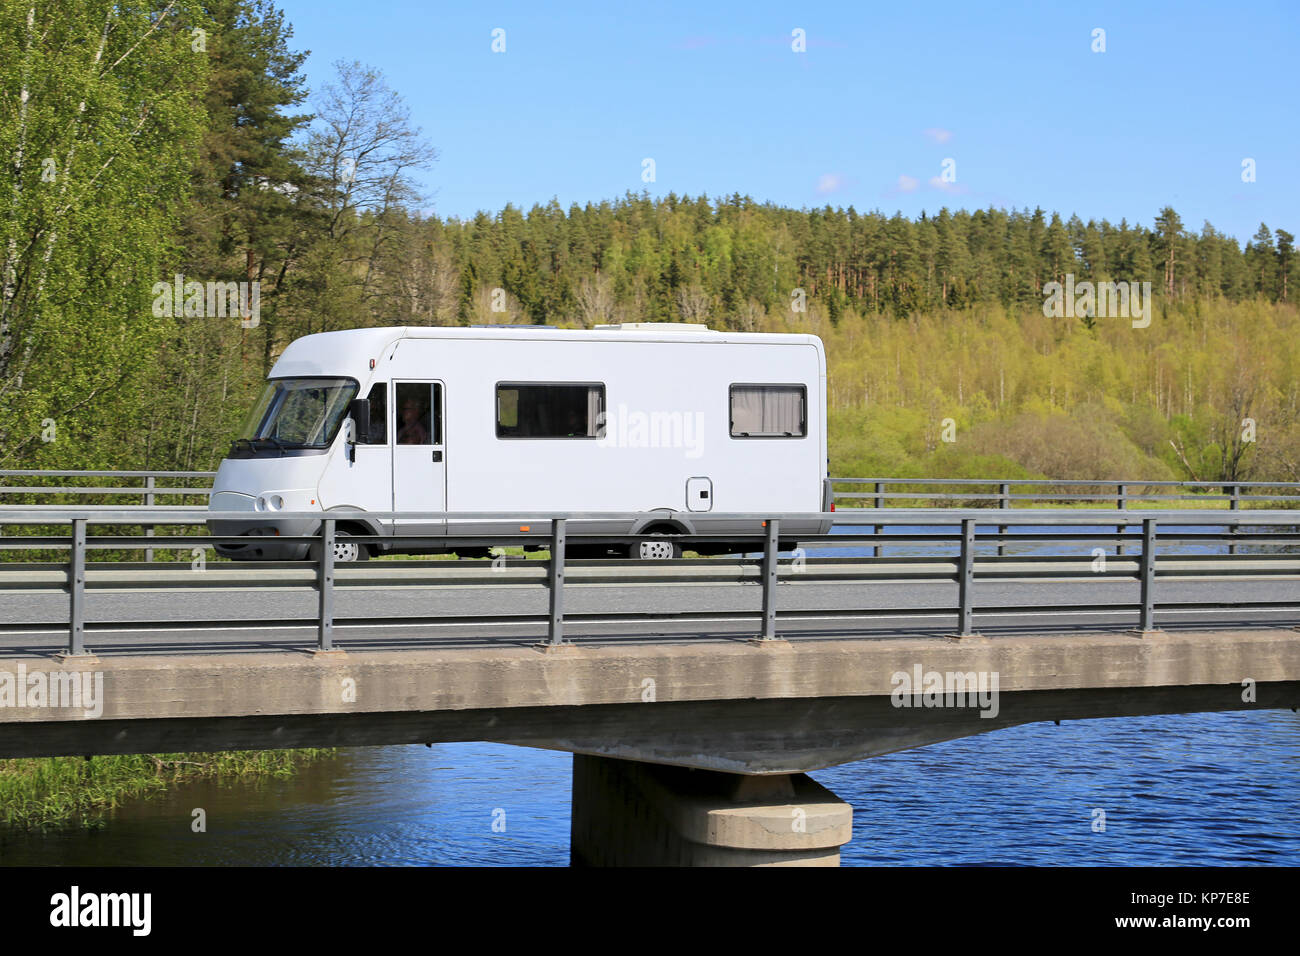 White motorhome traveling along scenic road on a bridge over water at summer. Stock Photo